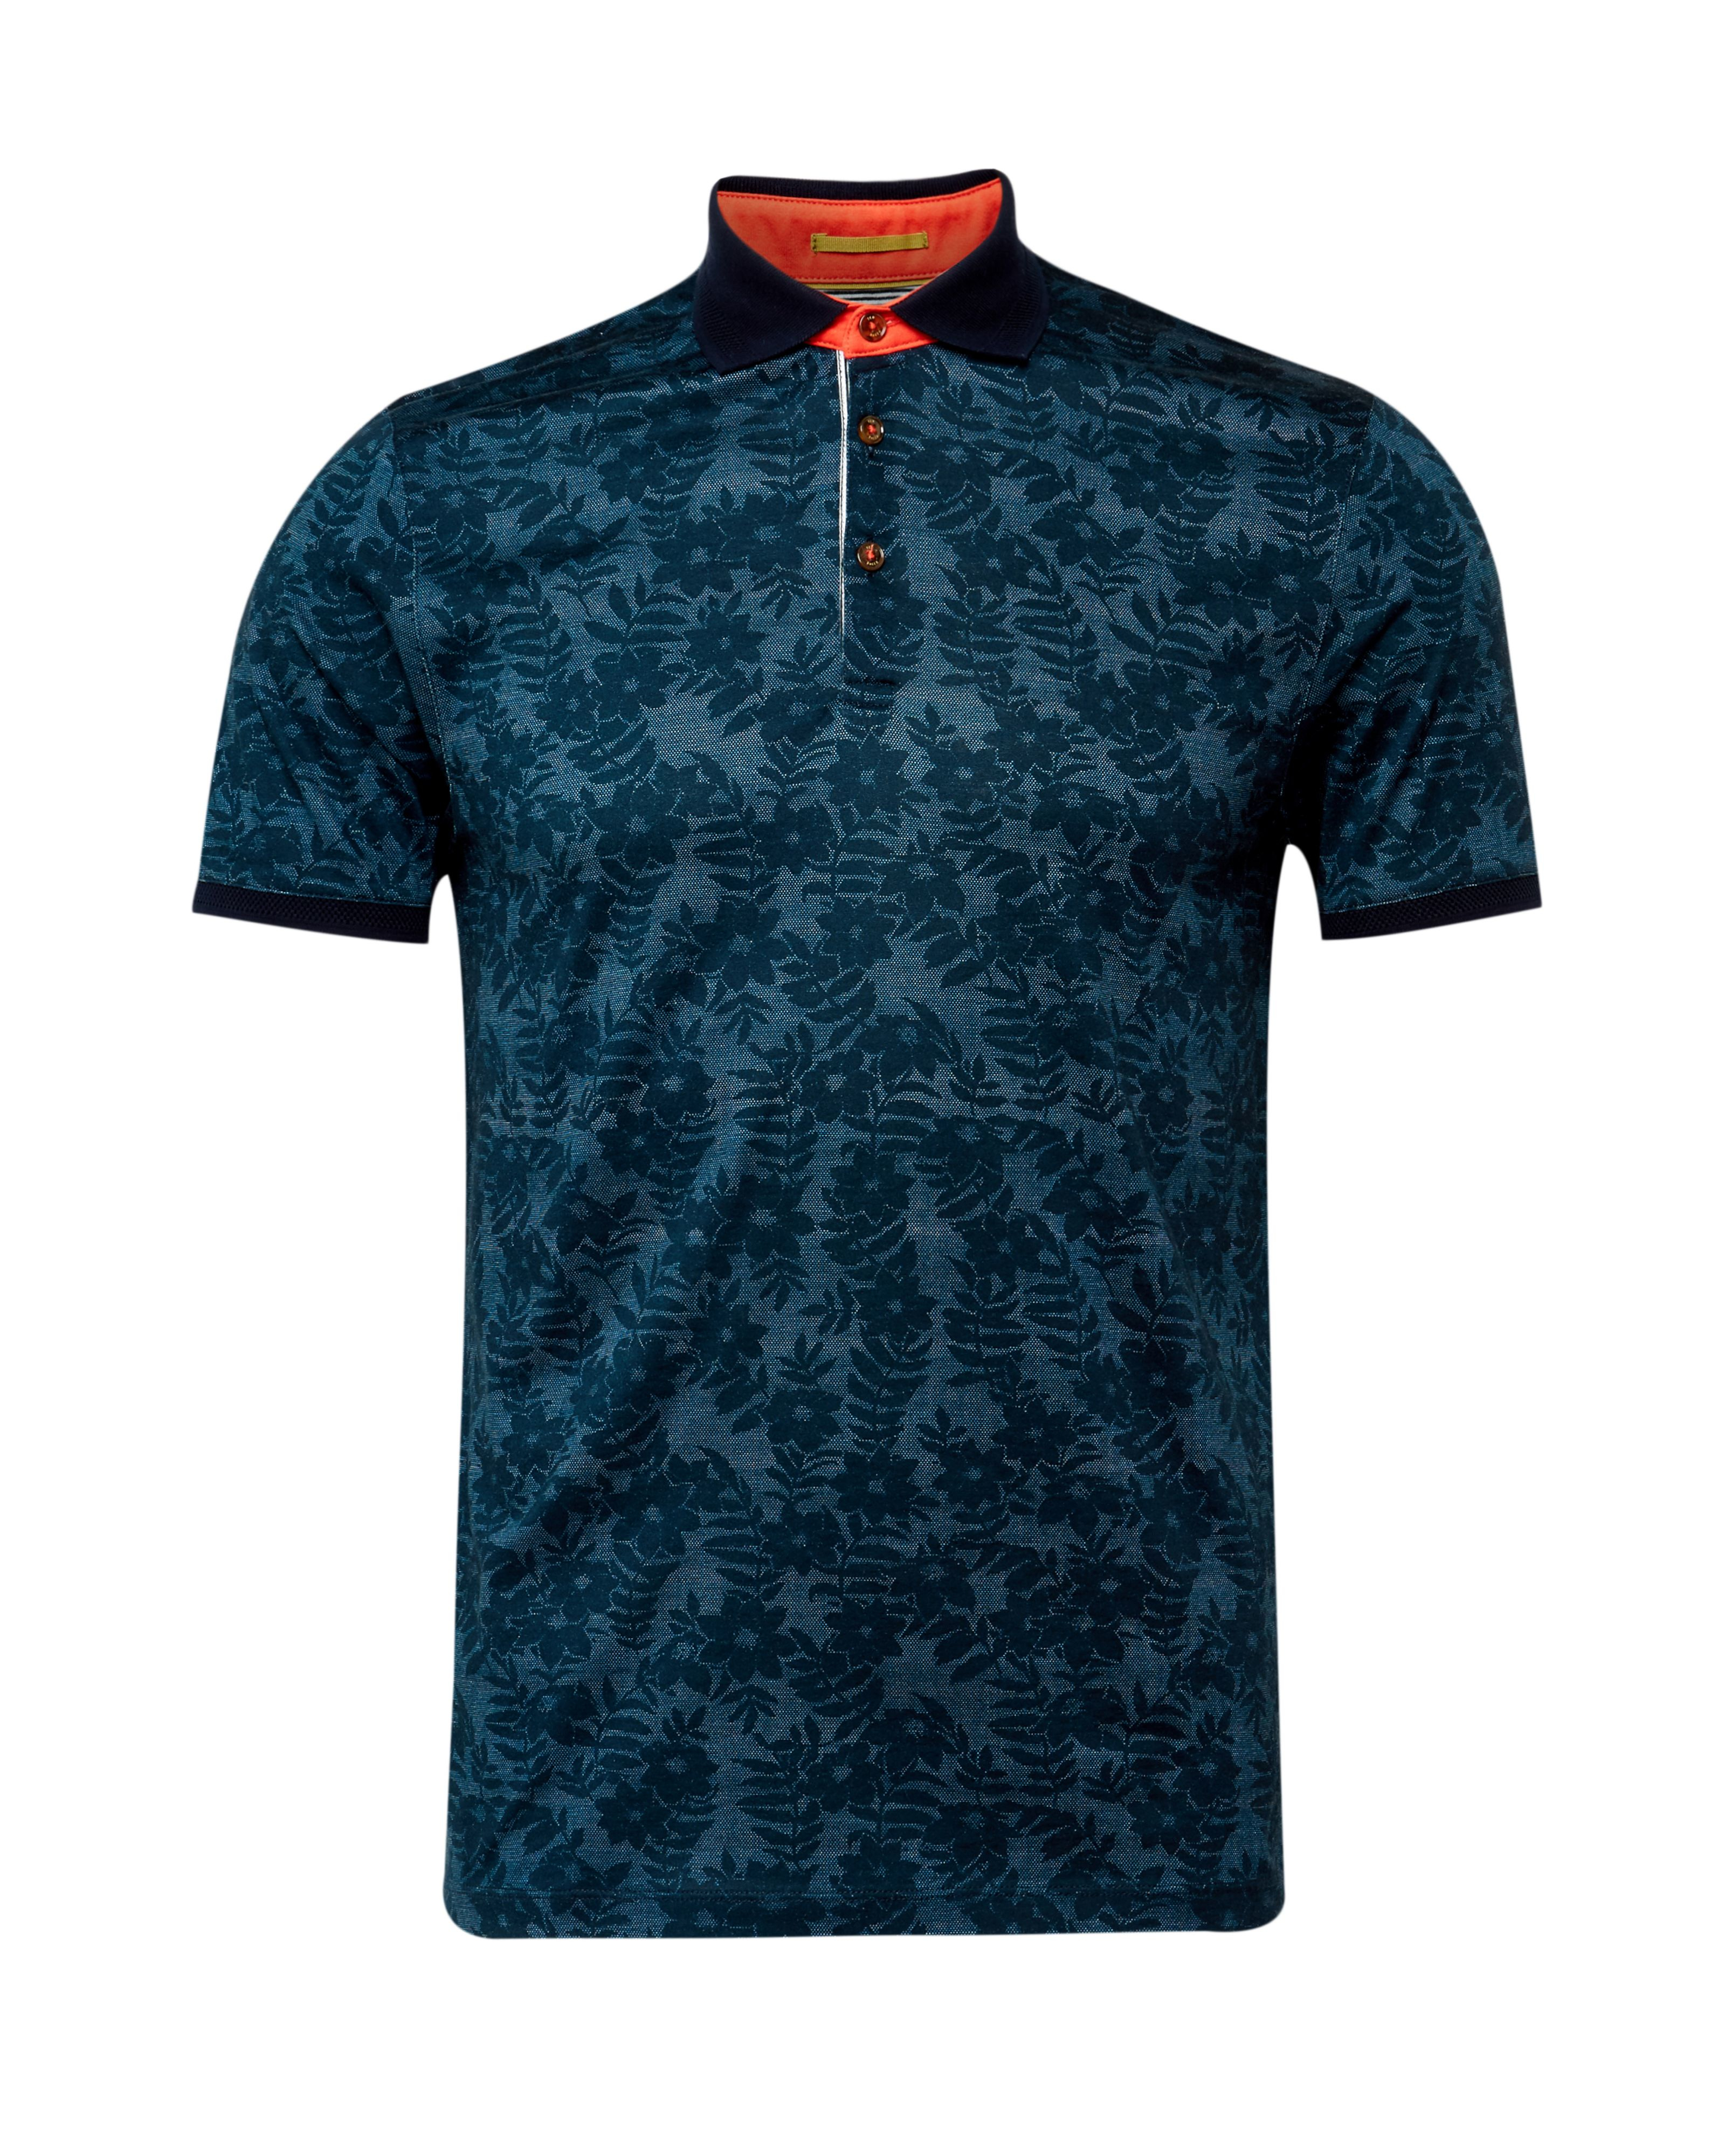 Ted baker floral print polo shirt in blue for men lyst for Ted baker floral print shirt